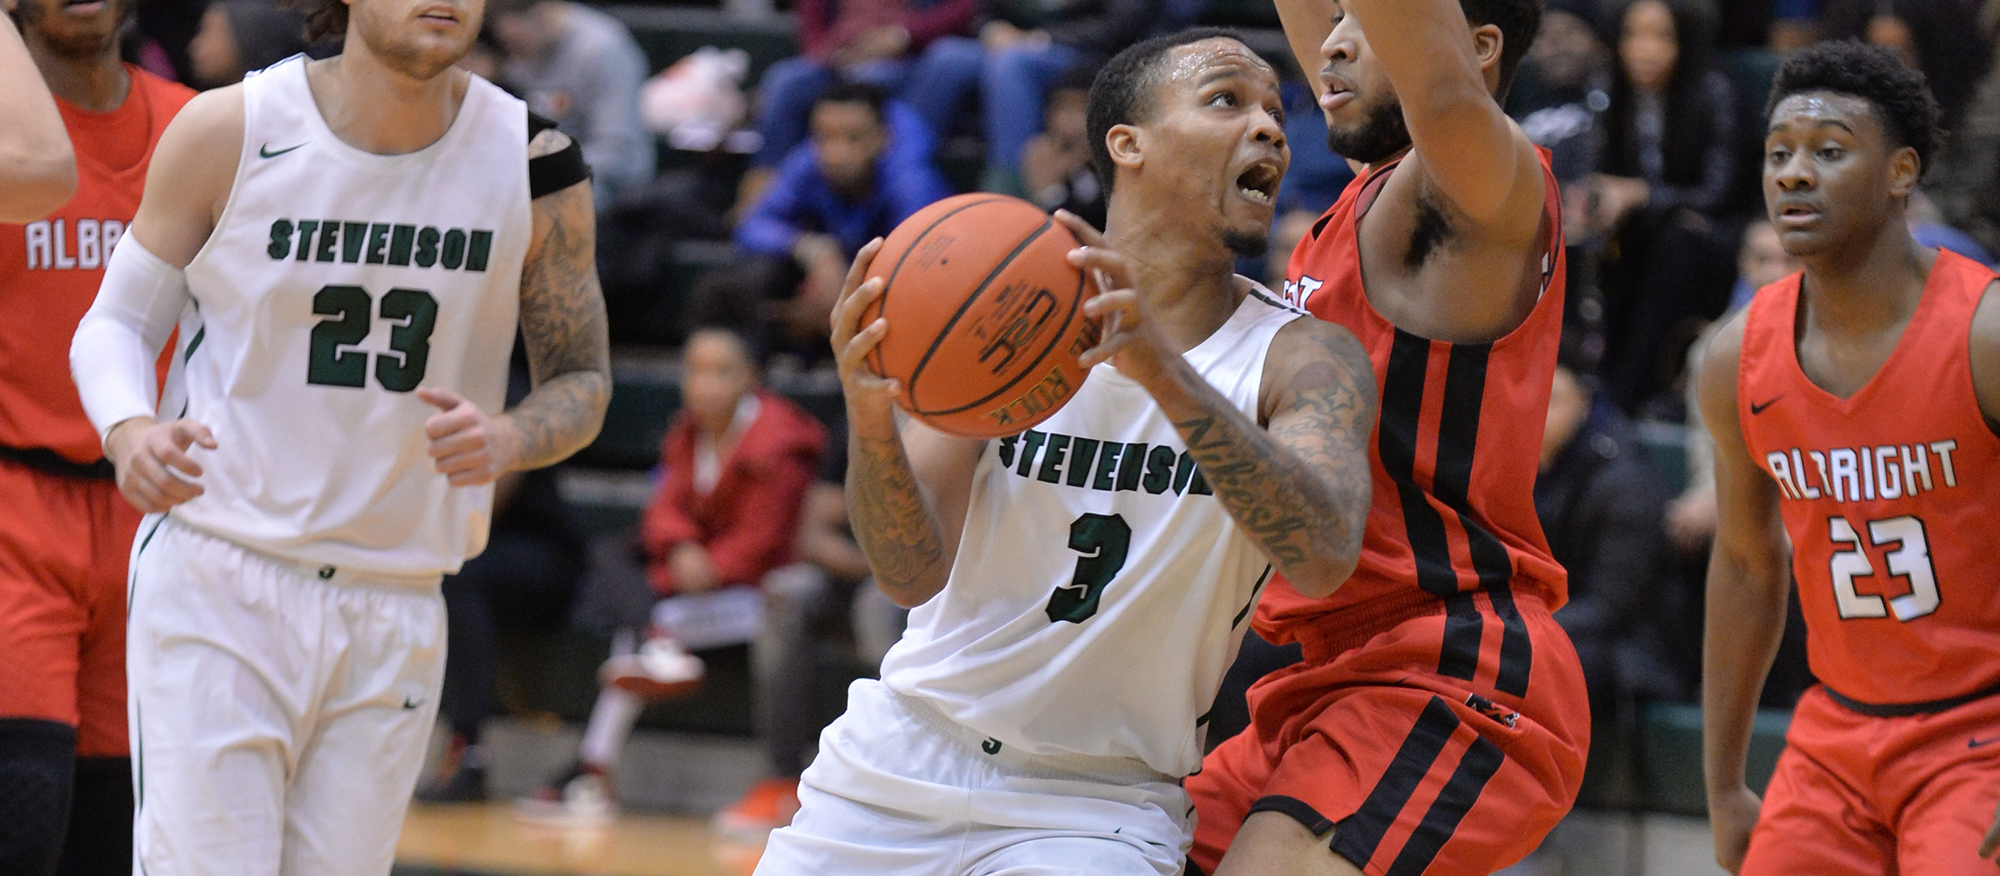 Men's Basketball Hosts Albright in MAC Commonwealth Championship Monday